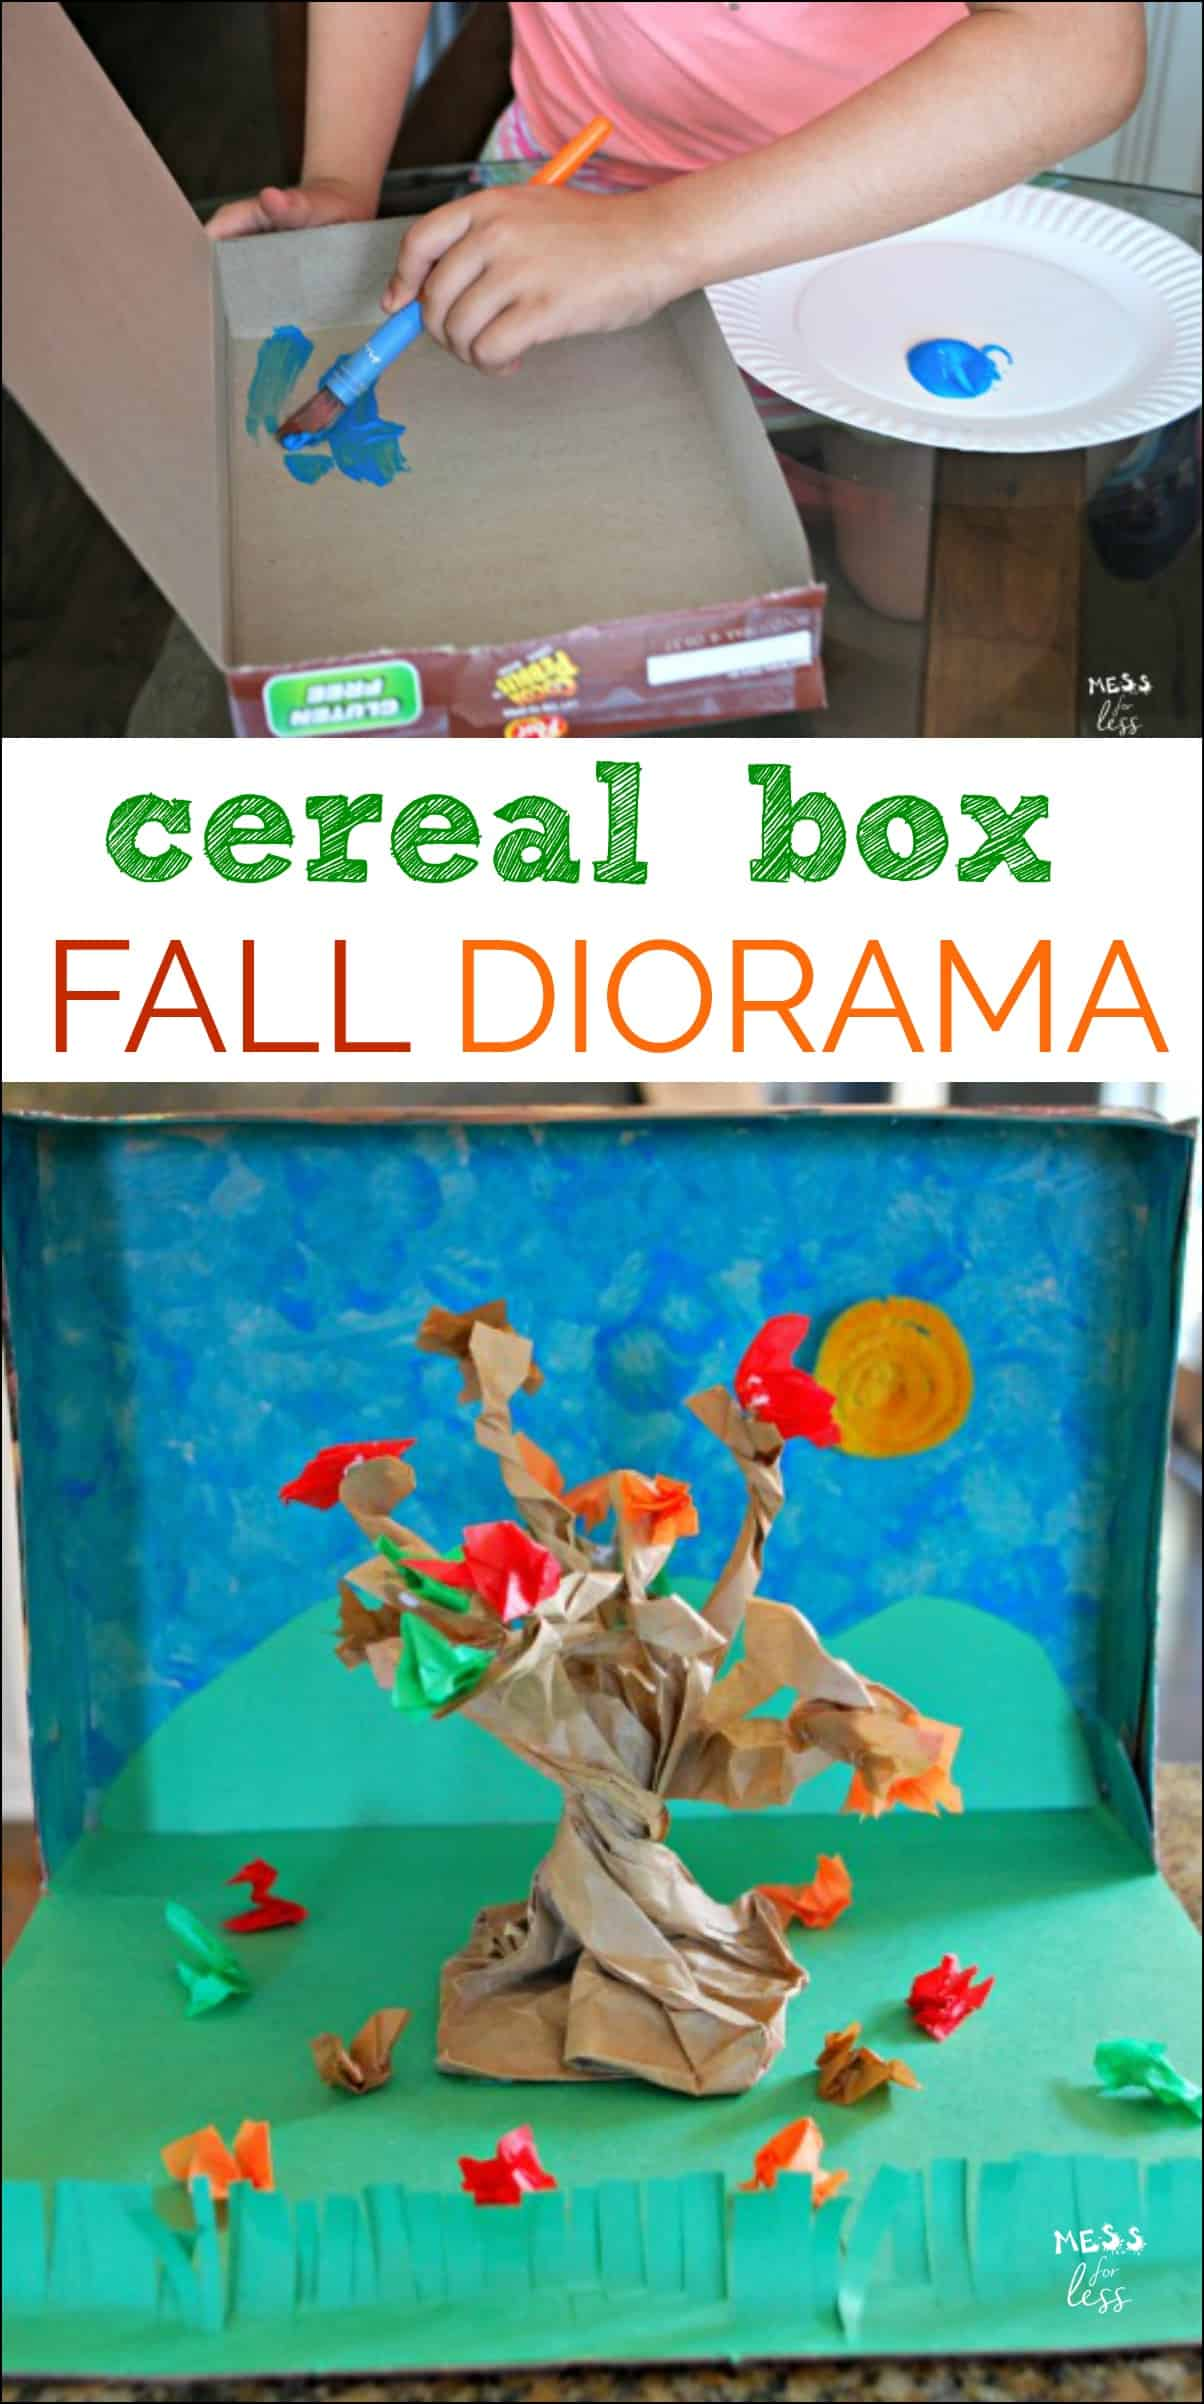 Kids Diorama With Details: Fall Diorama With Cereal Box